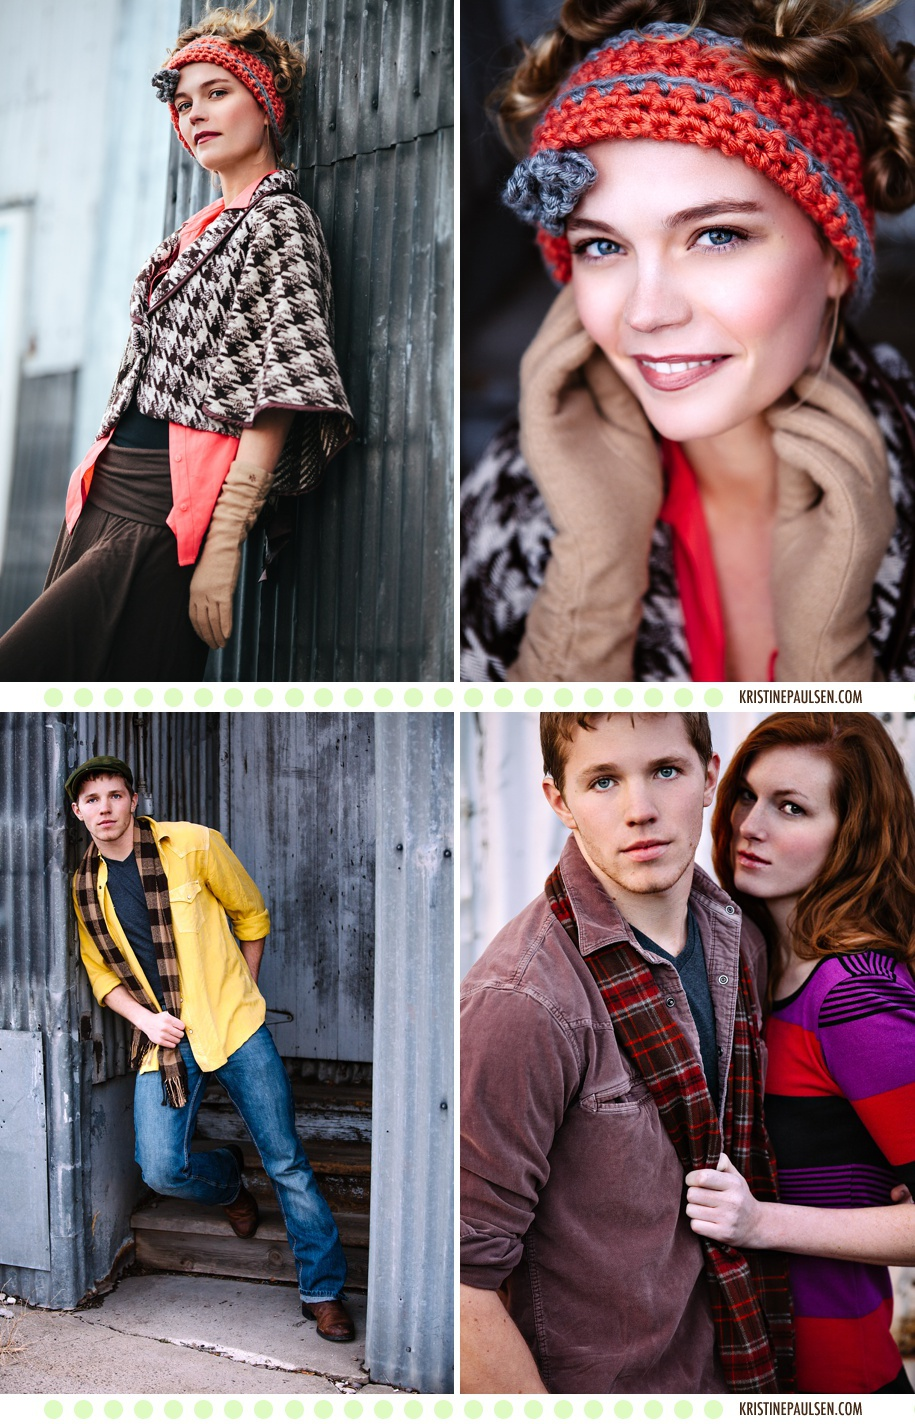 Missoula-Montana-Urban-Fashion-Photography-by-Kristine-Paulsen-Photography